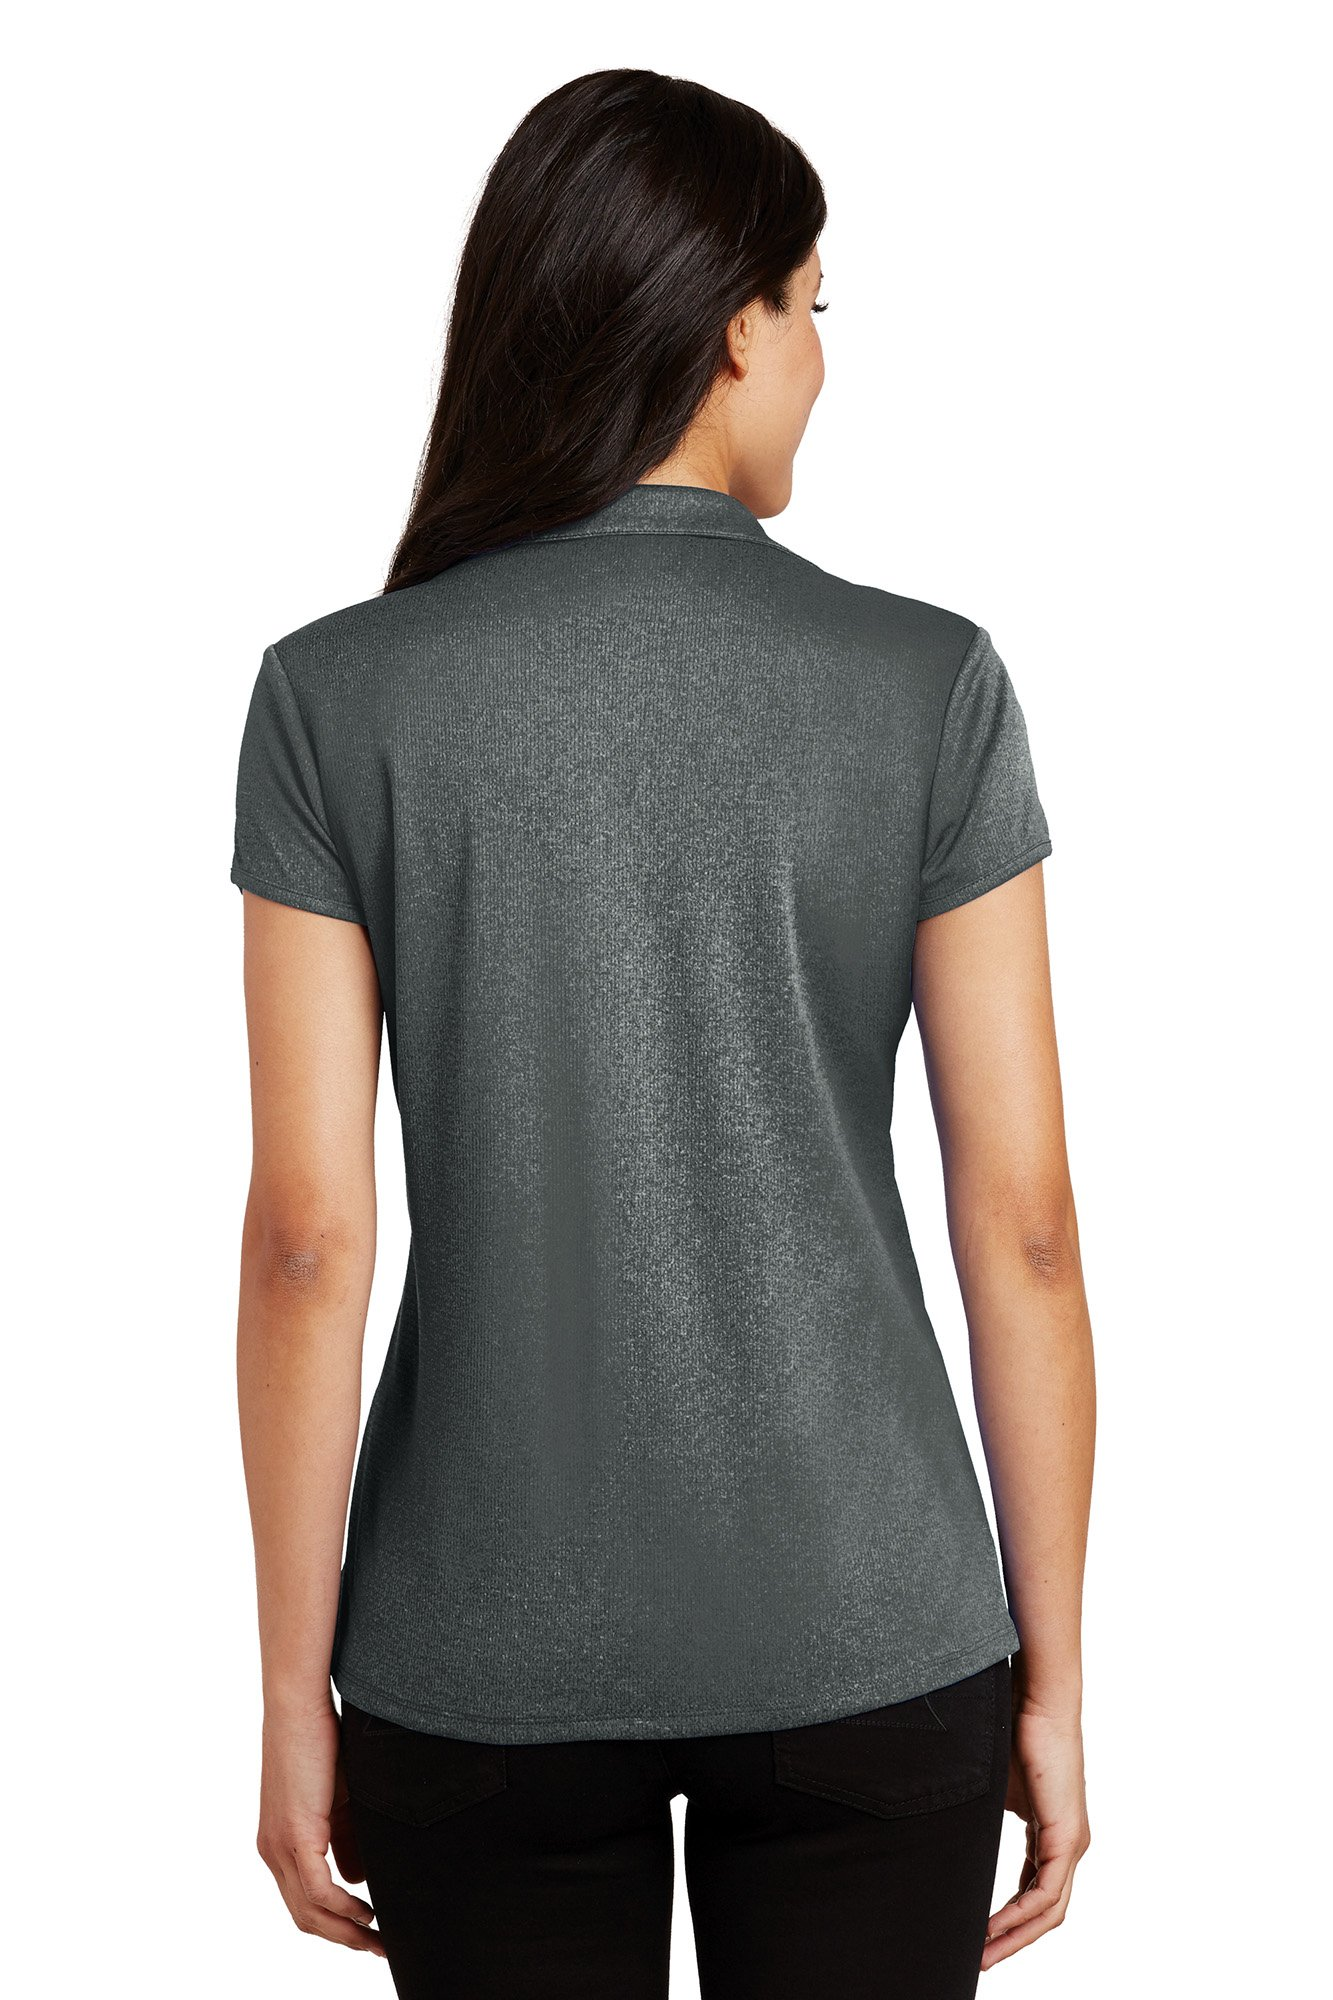 Opna Women's Ladies Moisture Wicking Athletic Golf Polo Shirts Tops & Tees by Opna (Image #3)